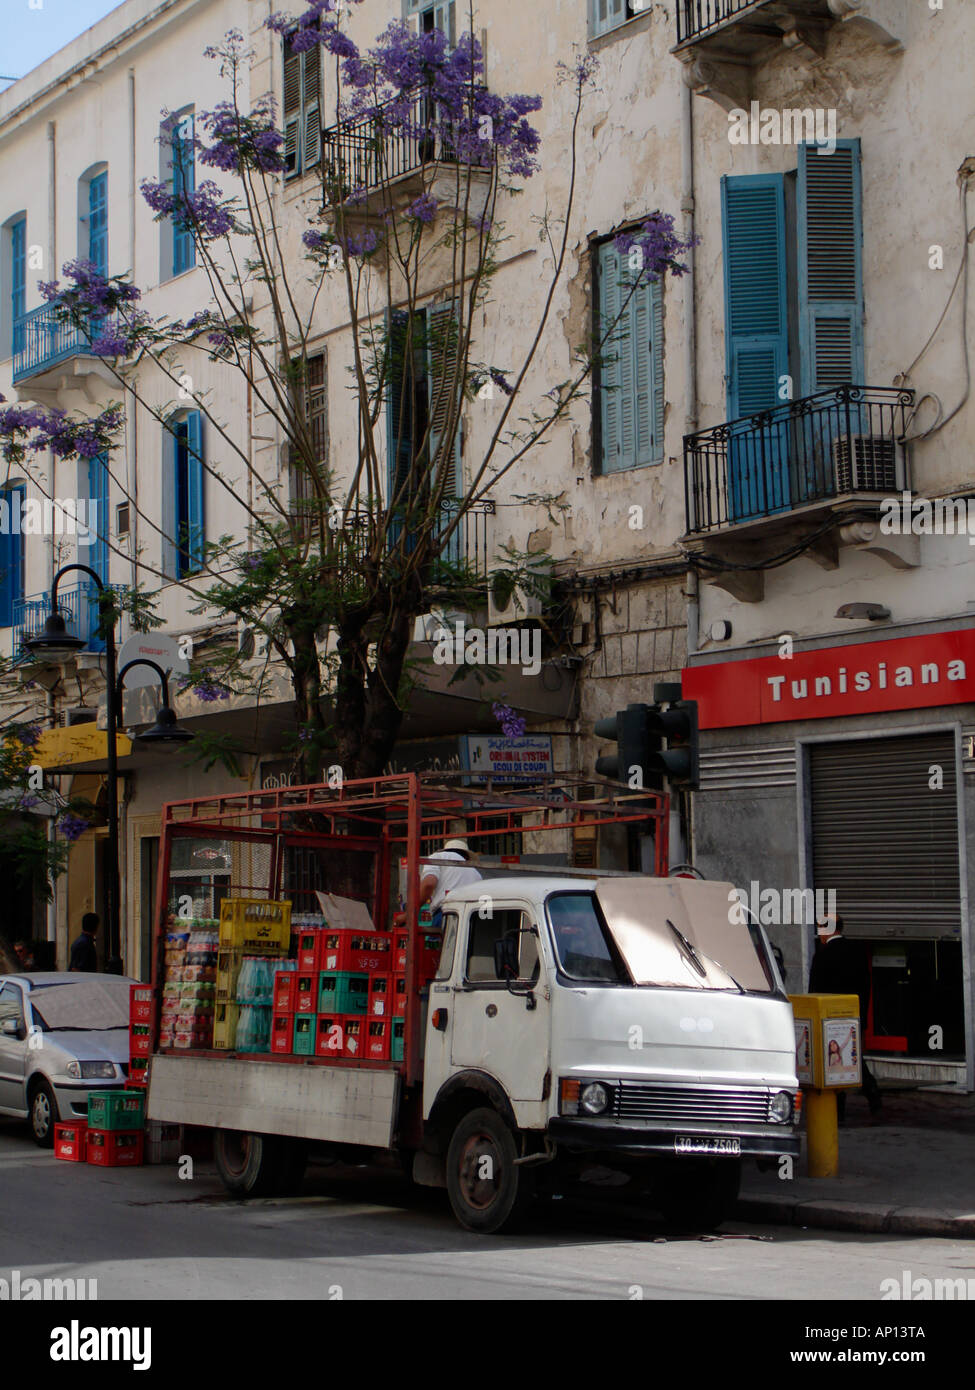 Truck in Tunis, Tunesia - Stock Image